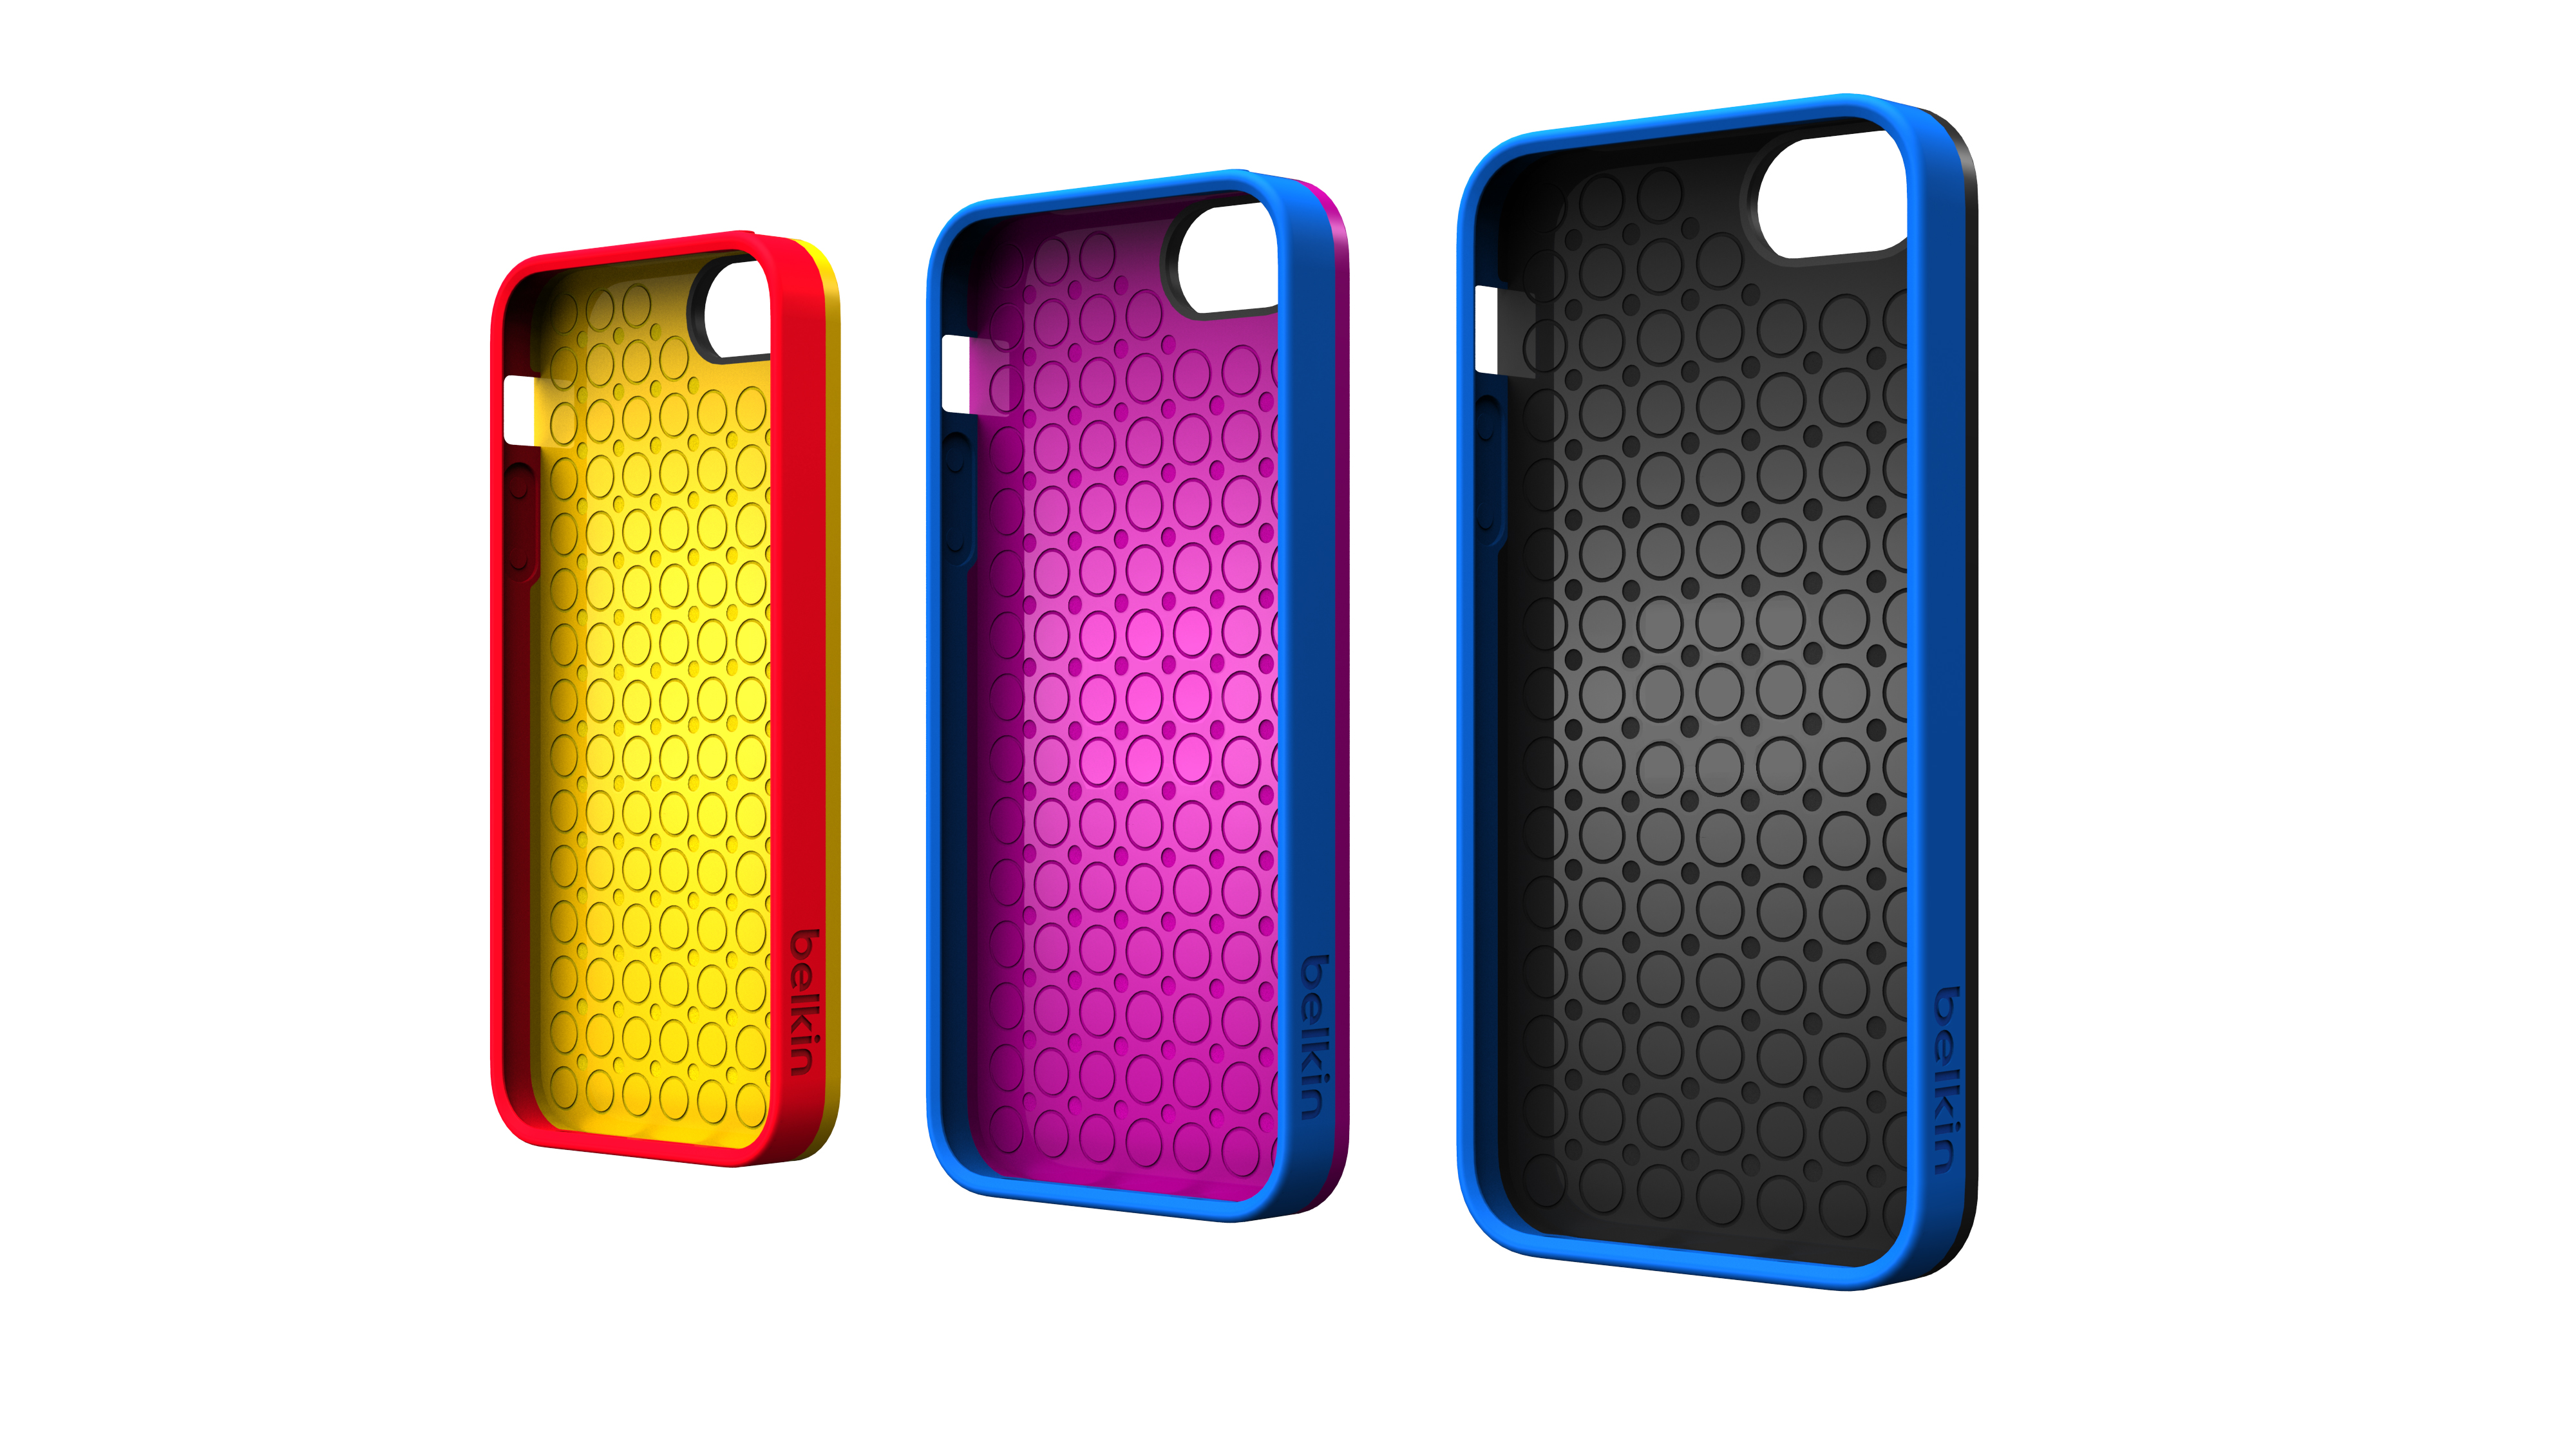 best service be133 f57b4 Lego-inspired iPhone and iPod Cases from Belkin